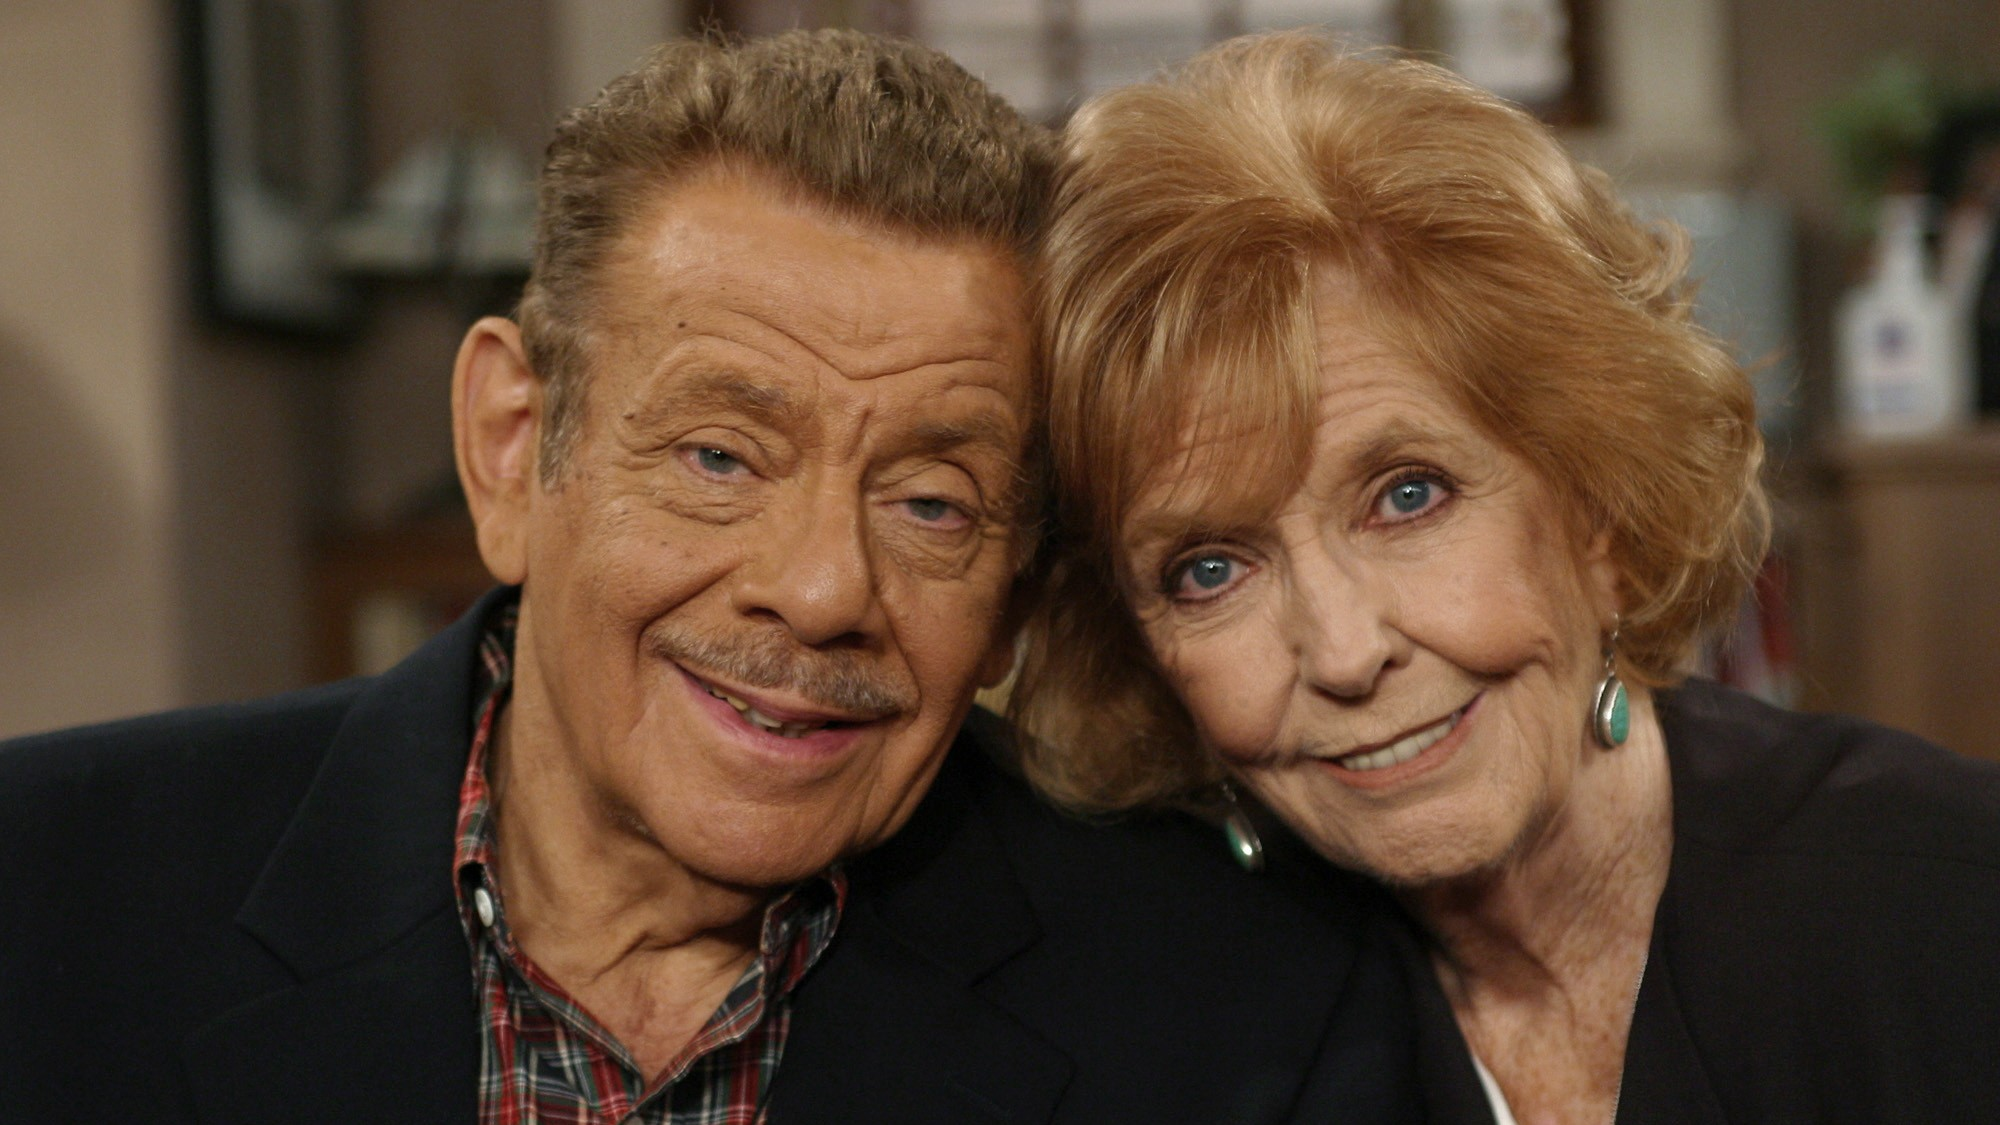 Jerry Stiller, 'Seinfeld' actor and comedian, dead at 92